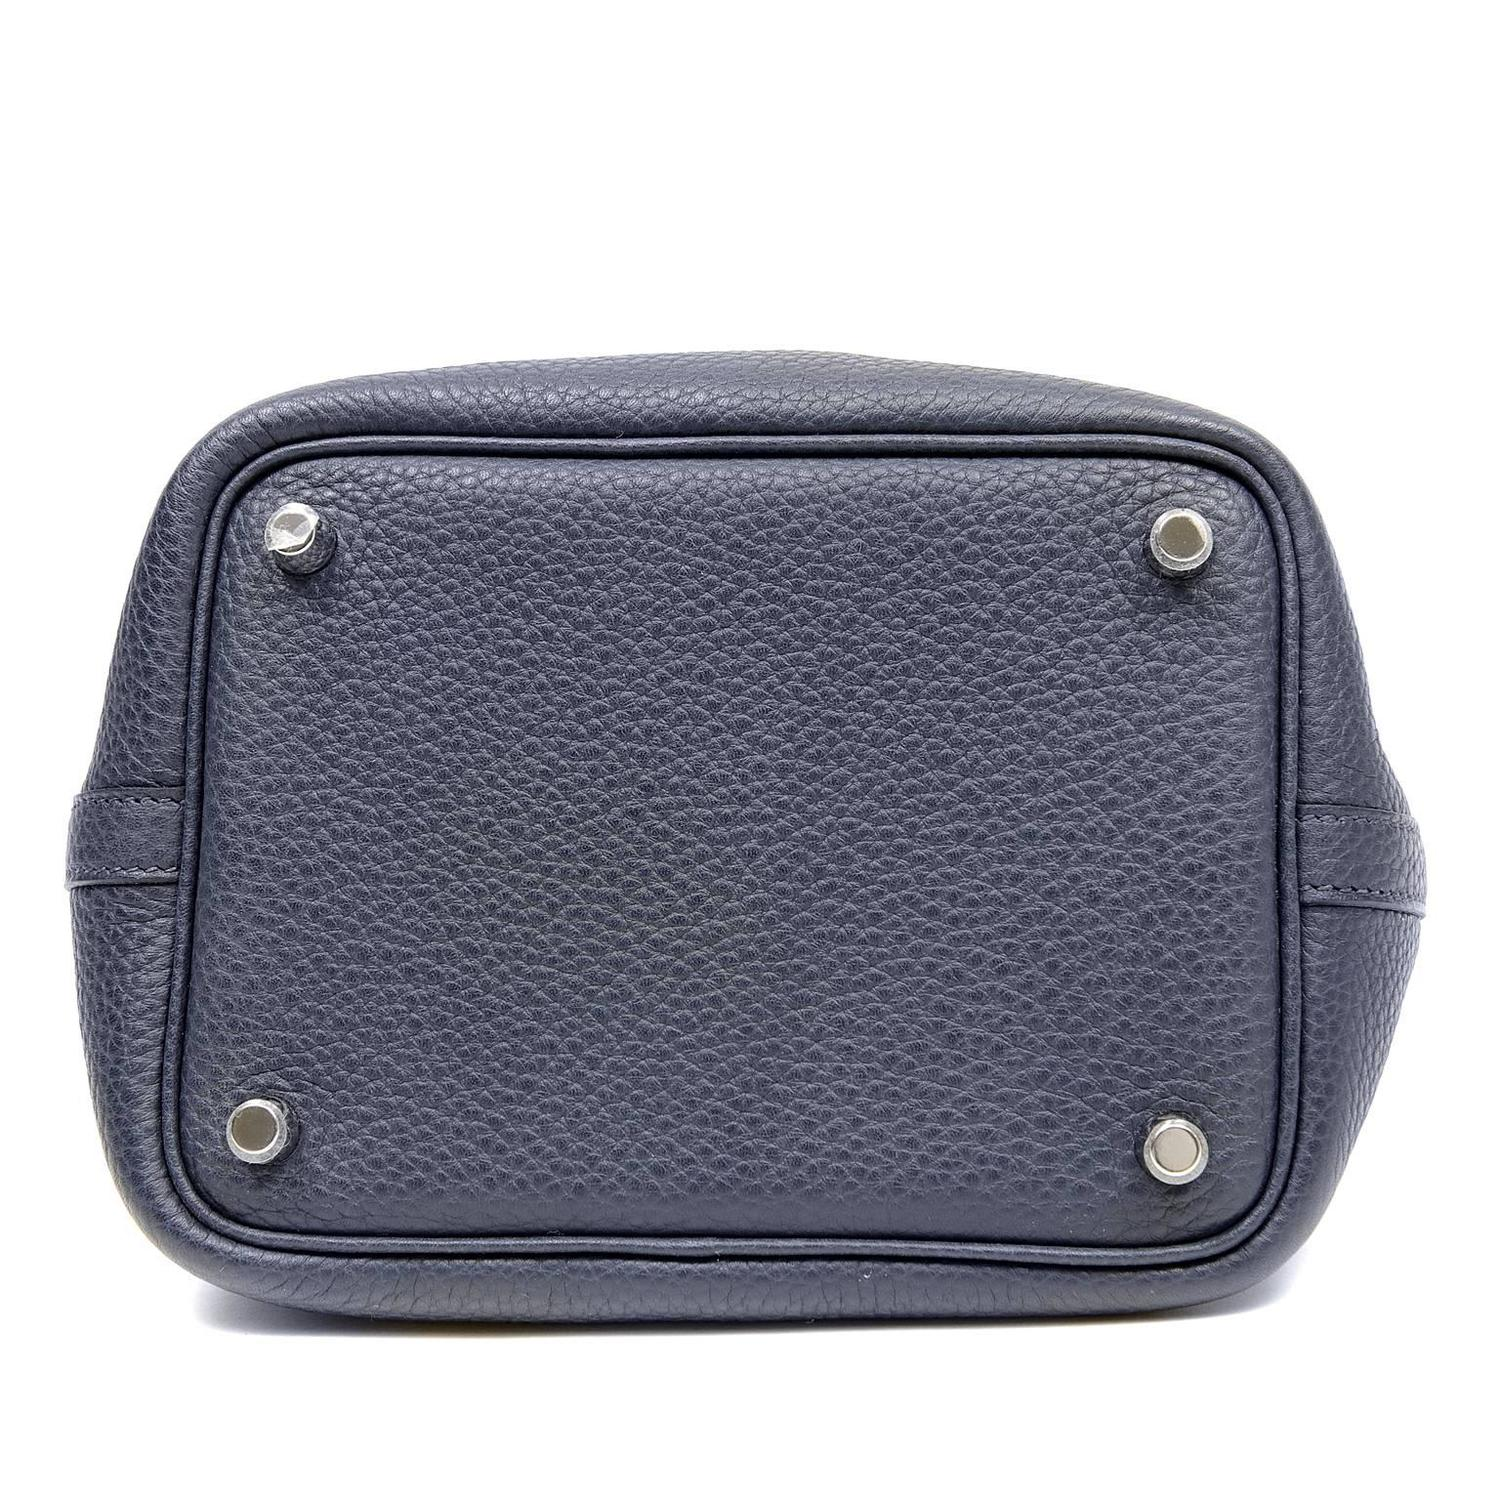 Hermes Indigo Clemence Leather Picotin Lock PM Bag For Sale at 1stdibs